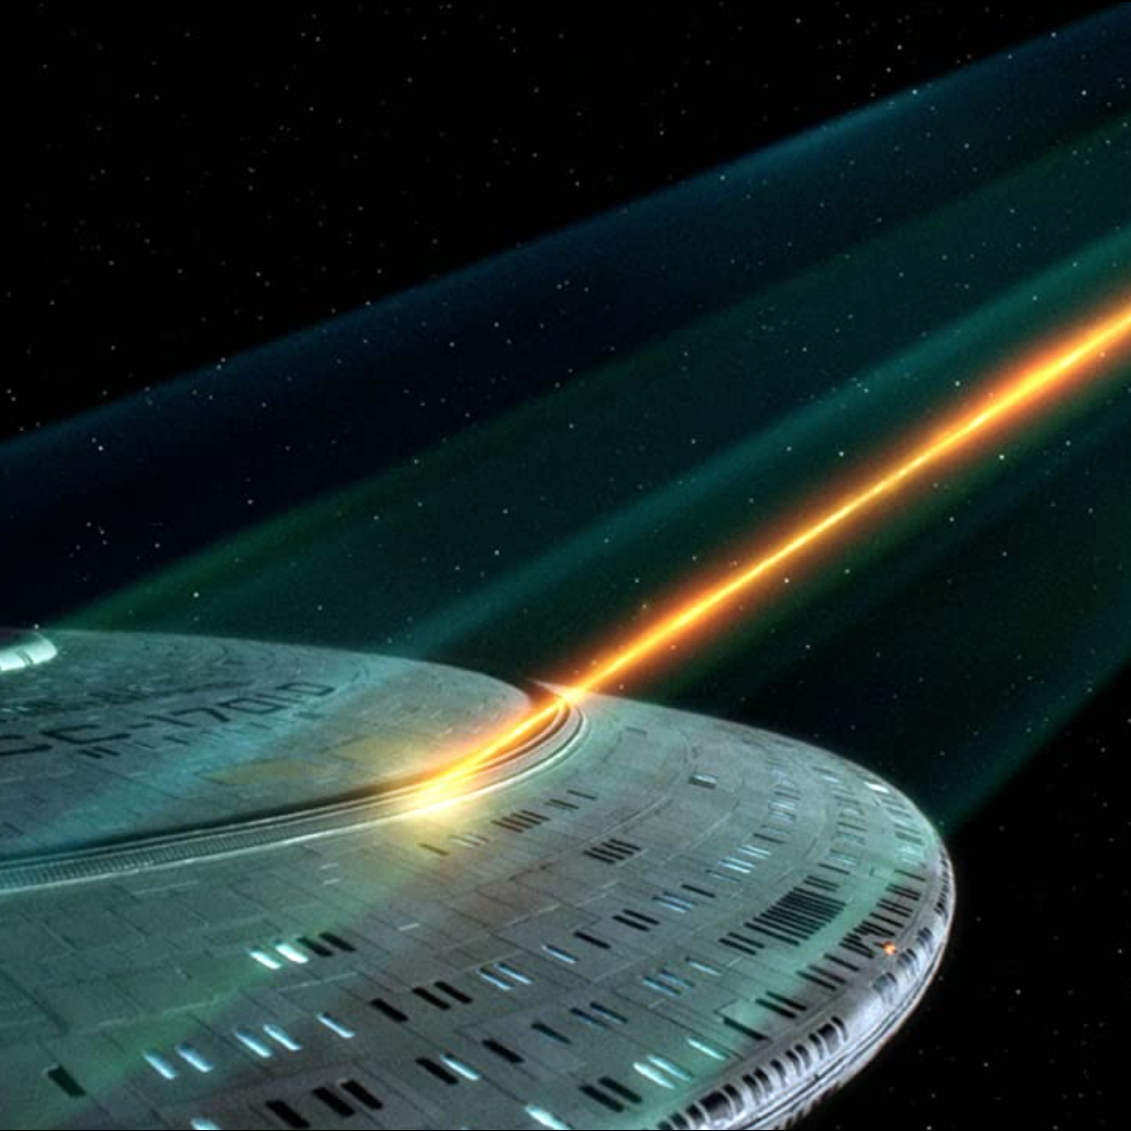 Screen Shot 2021 03 09 at 10.26.01 am e1615285600226 30 Intergalactic Facts About Star Trek: The Next Generation